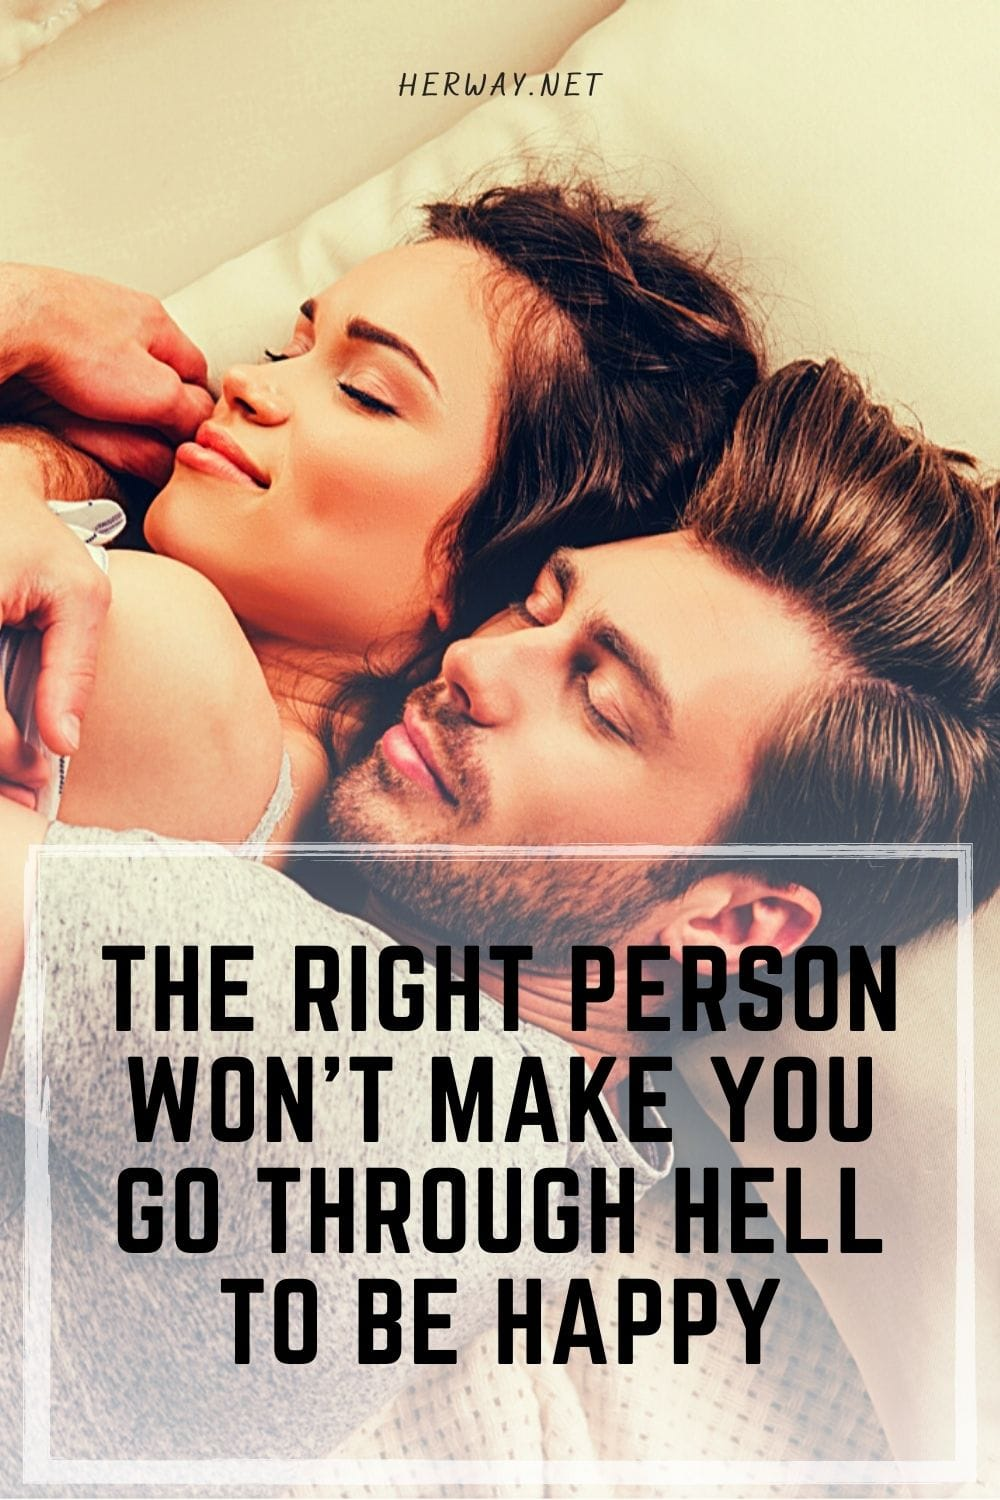 The Right Person Won't Make You Go Through Hell To Be Happy